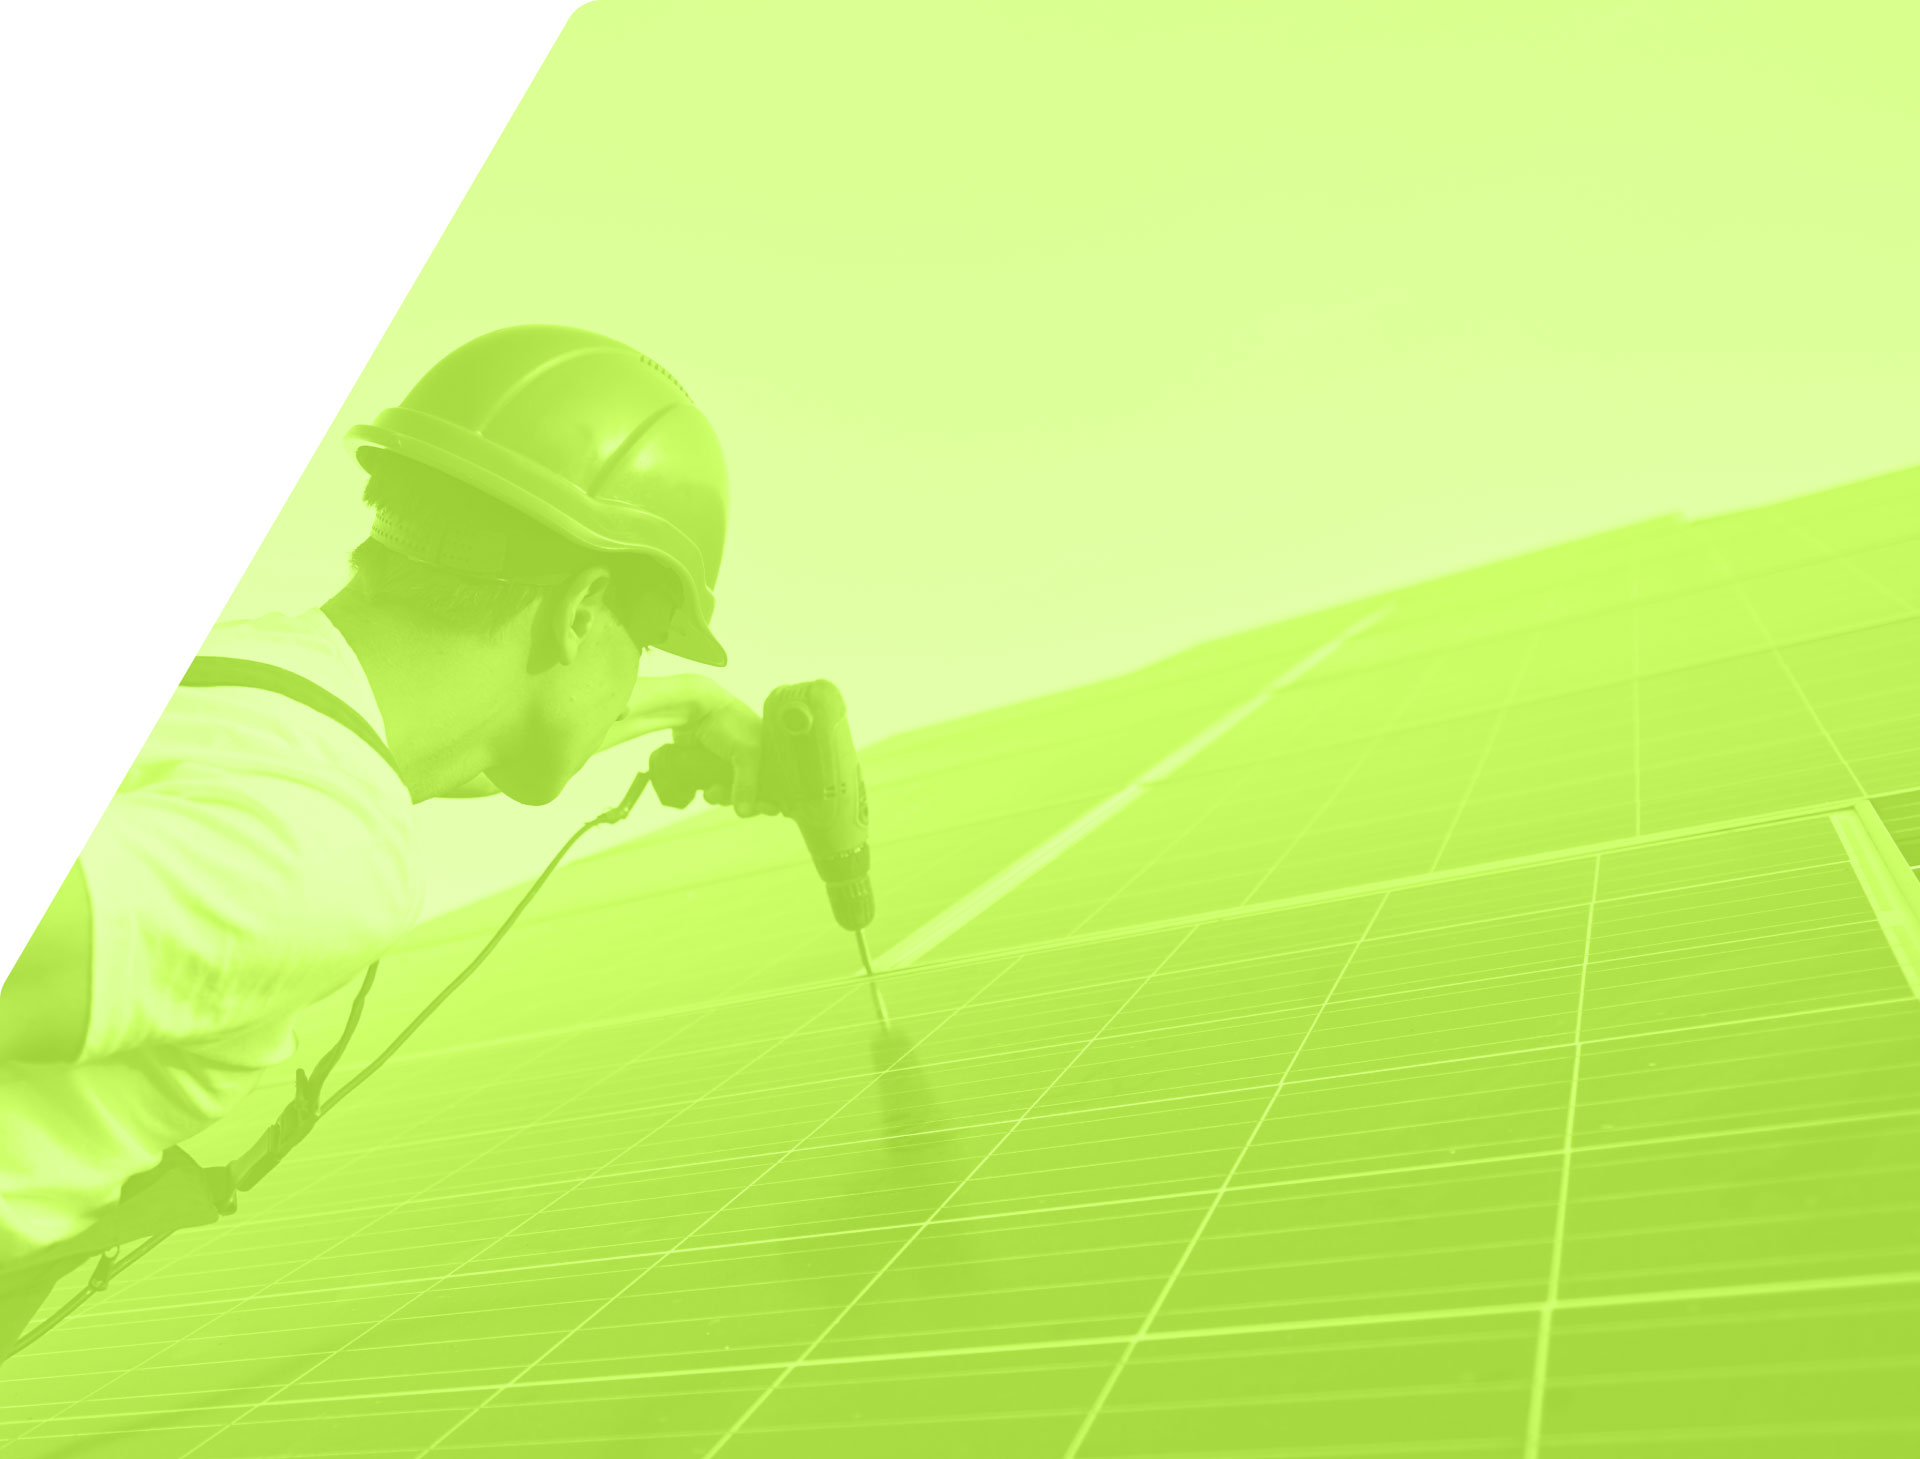 An innovative solution for professional solar panel installers